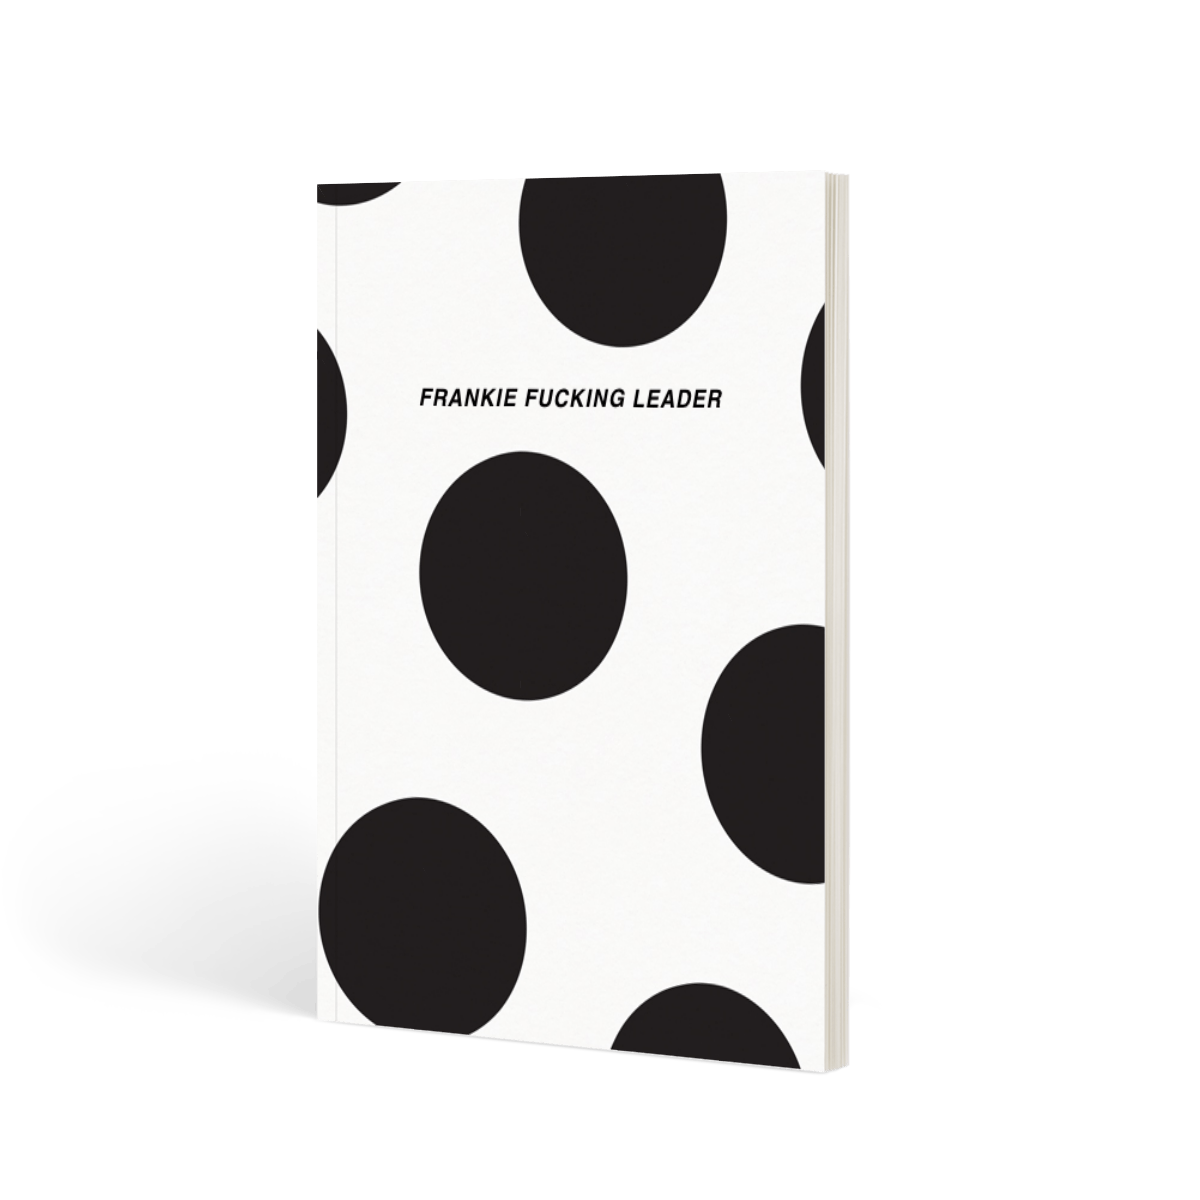 Https%3a%2f%2fwww.papier.com%2fproduct image%2f57122%2f6%2ff king polka dots 13718 front 1542370439.png?ixlib=rb 1.1